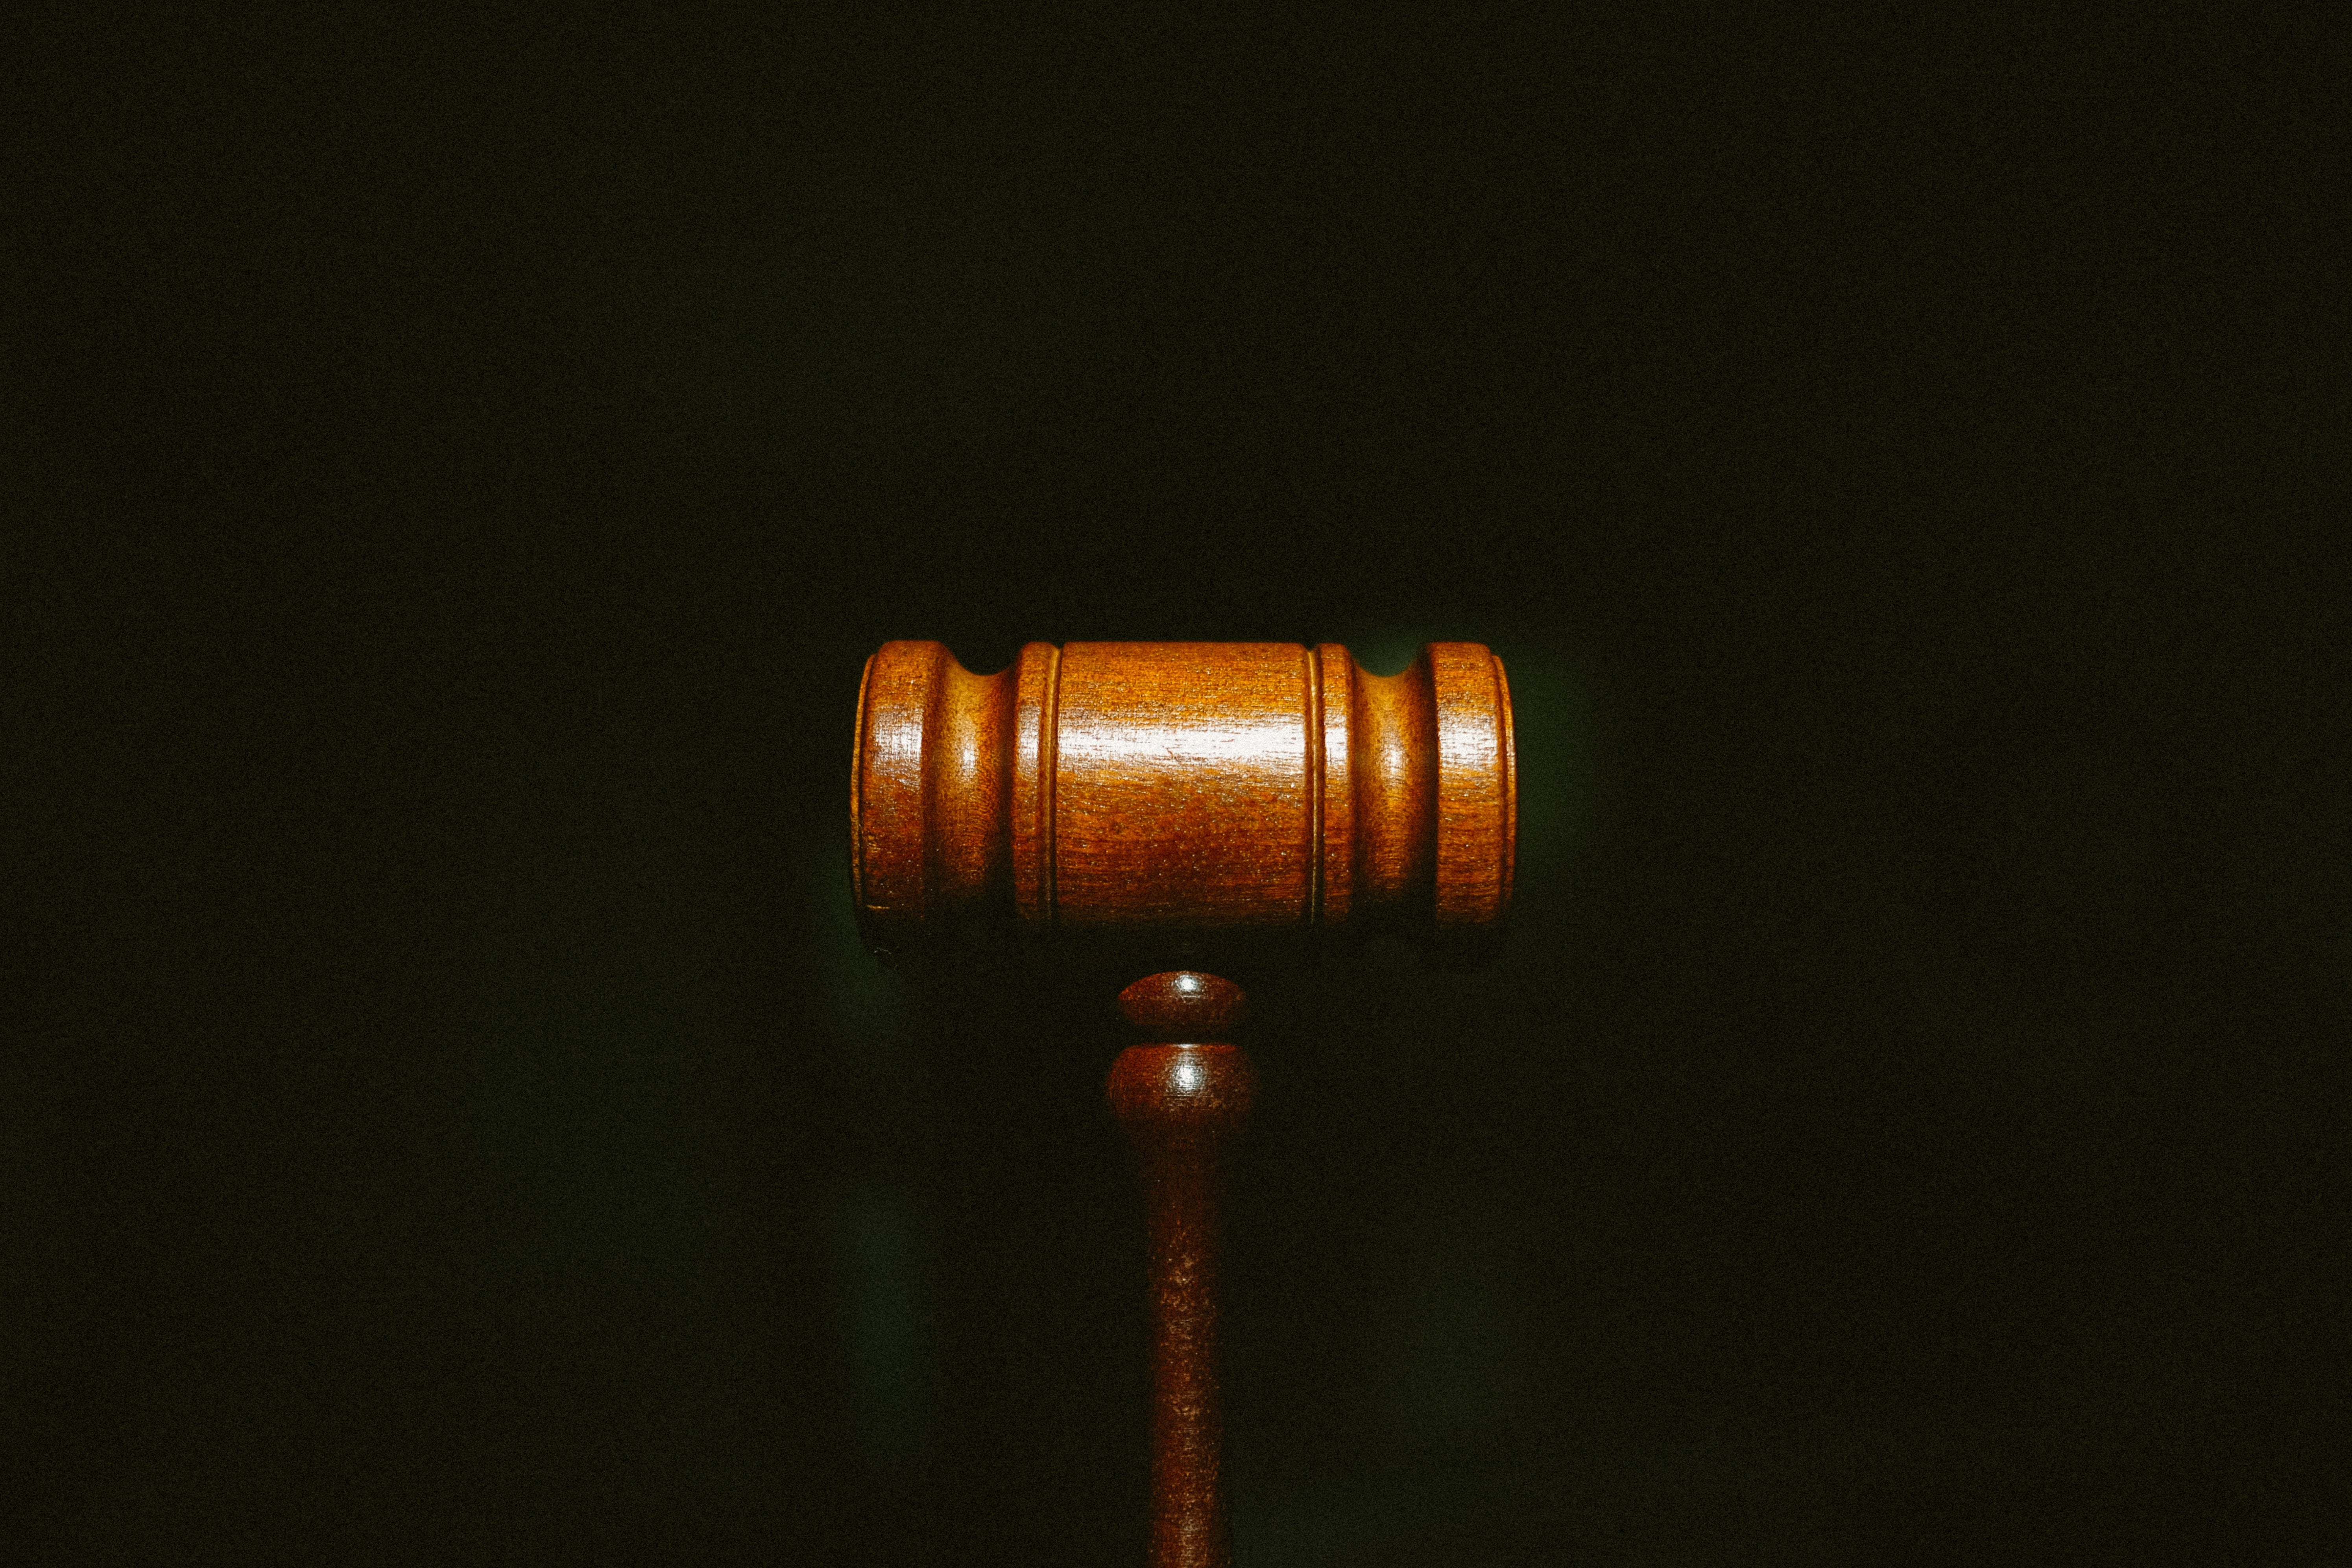 A gavel against a black background